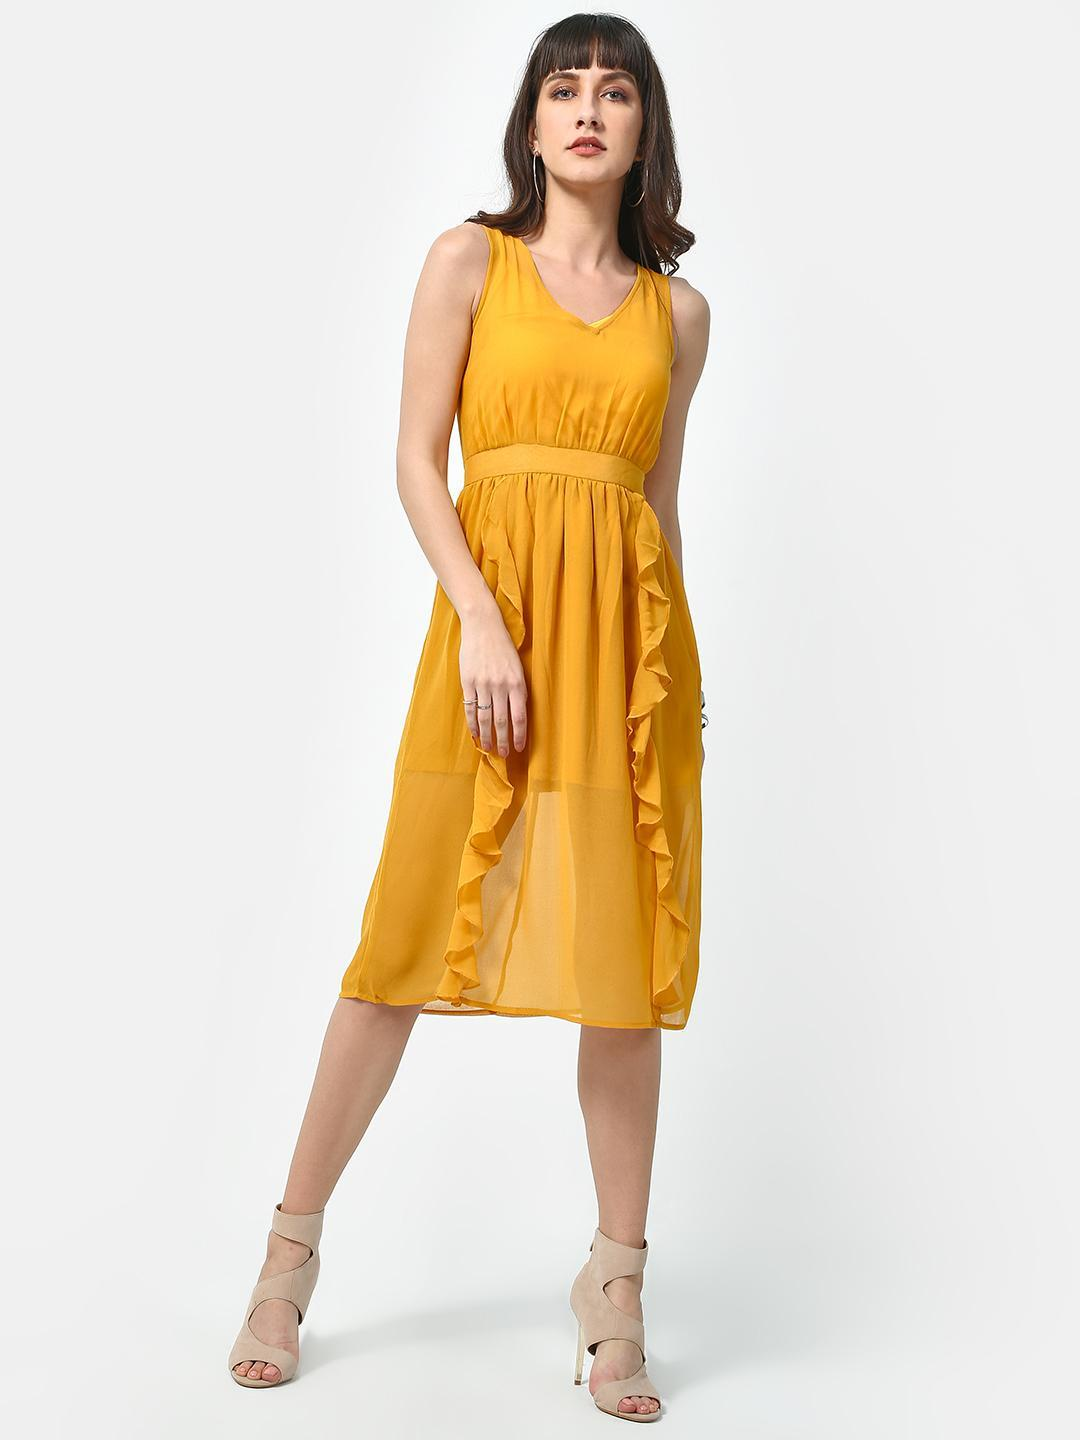 Oxolloxo Yellow Sunshine Solid Midi Dress 1